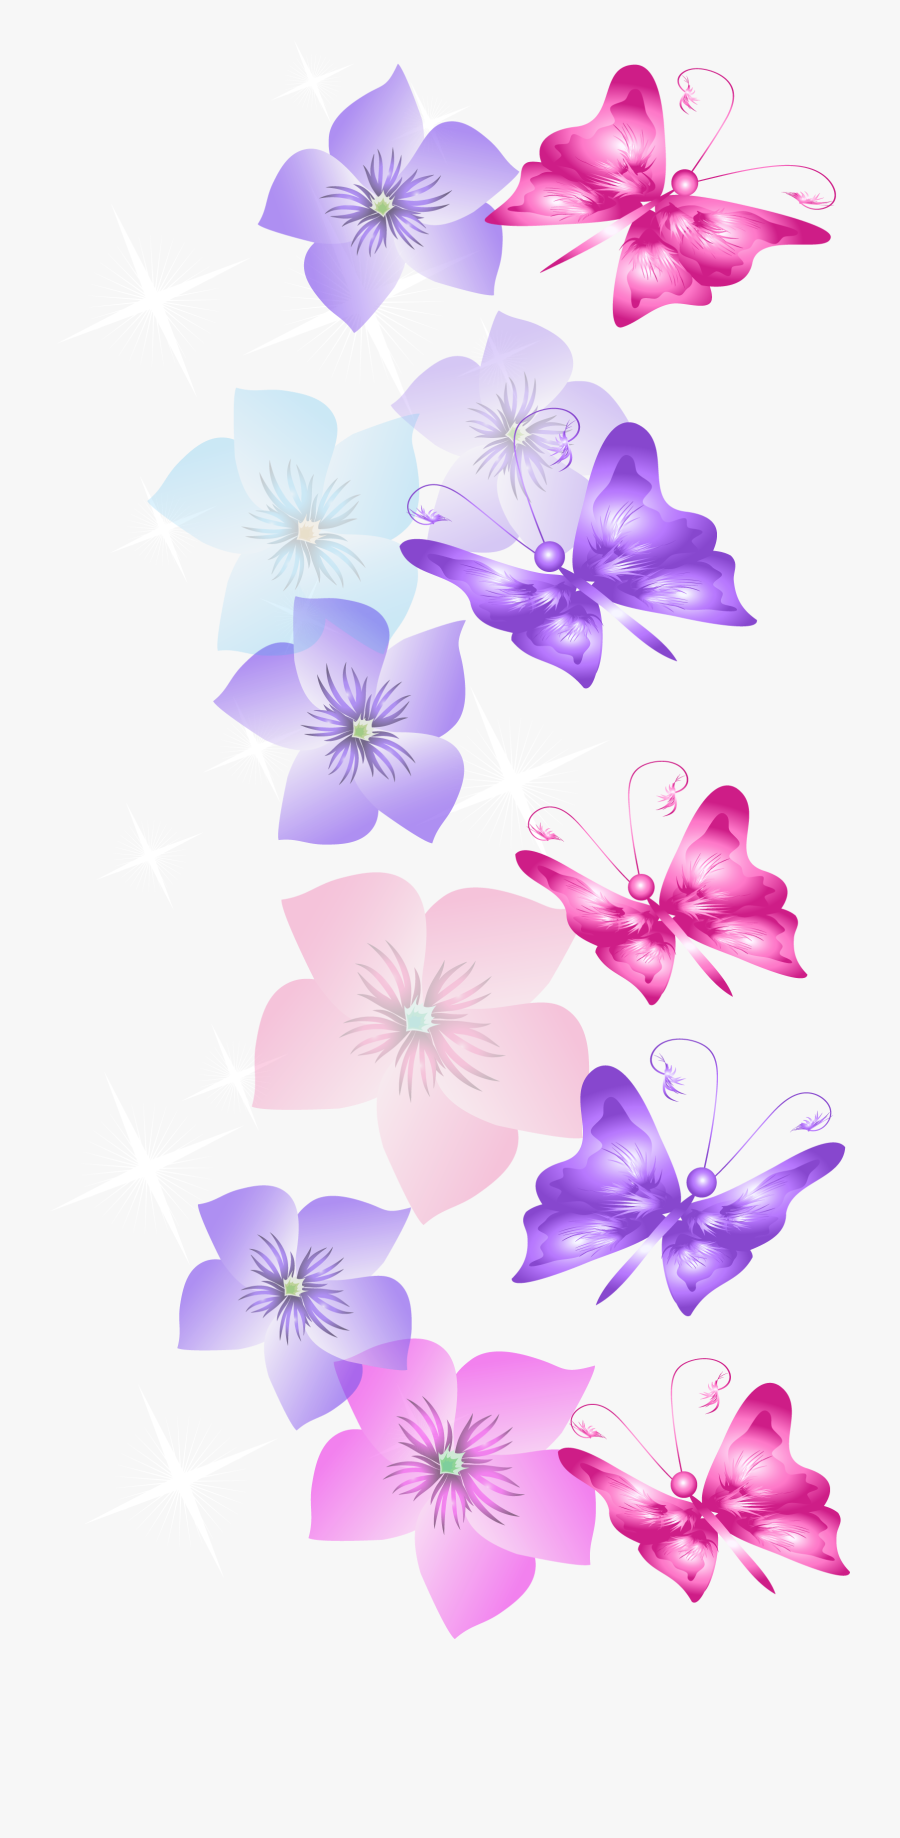 Butterflies And Flowers Decoration Png Clipart - Butterfly Flower Transparent Png, Transparent Clipart